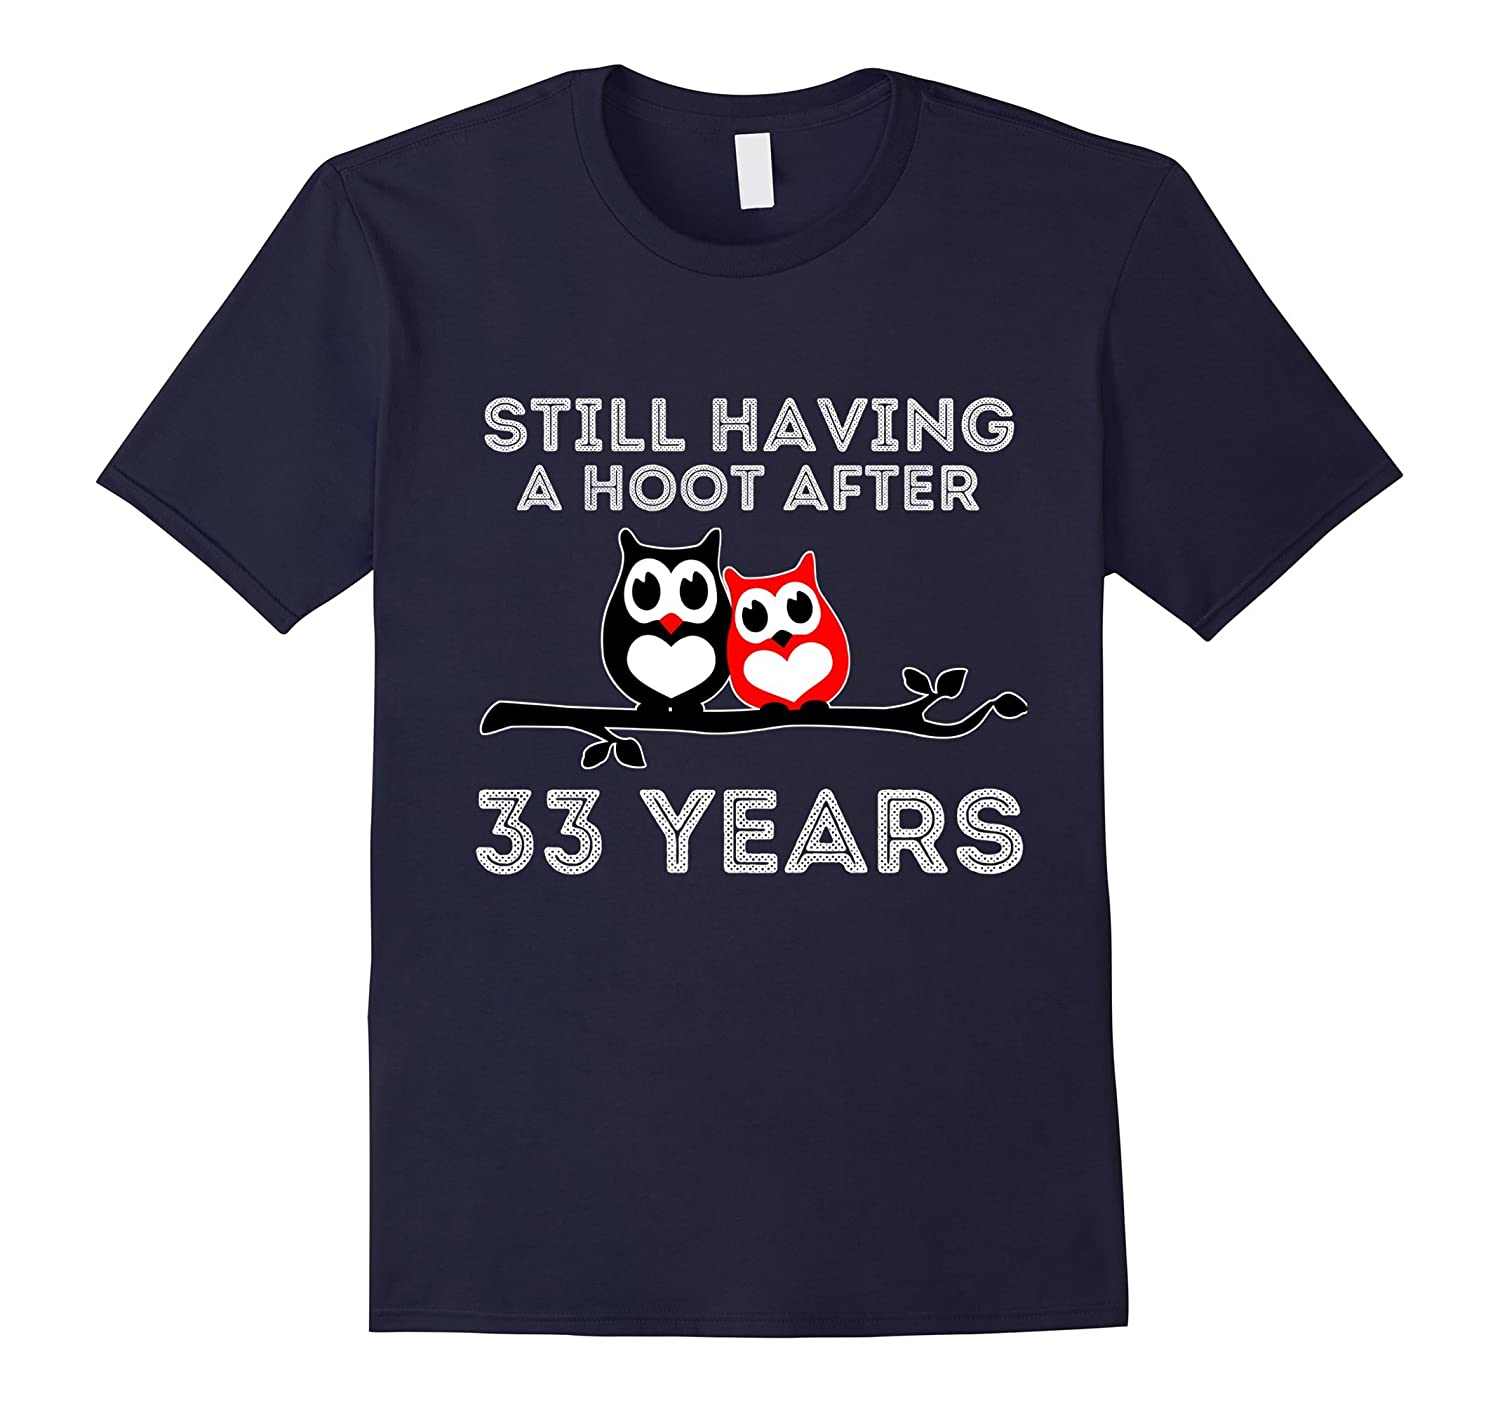 Still having a hoot after 33 years Couples Gift T-shirt